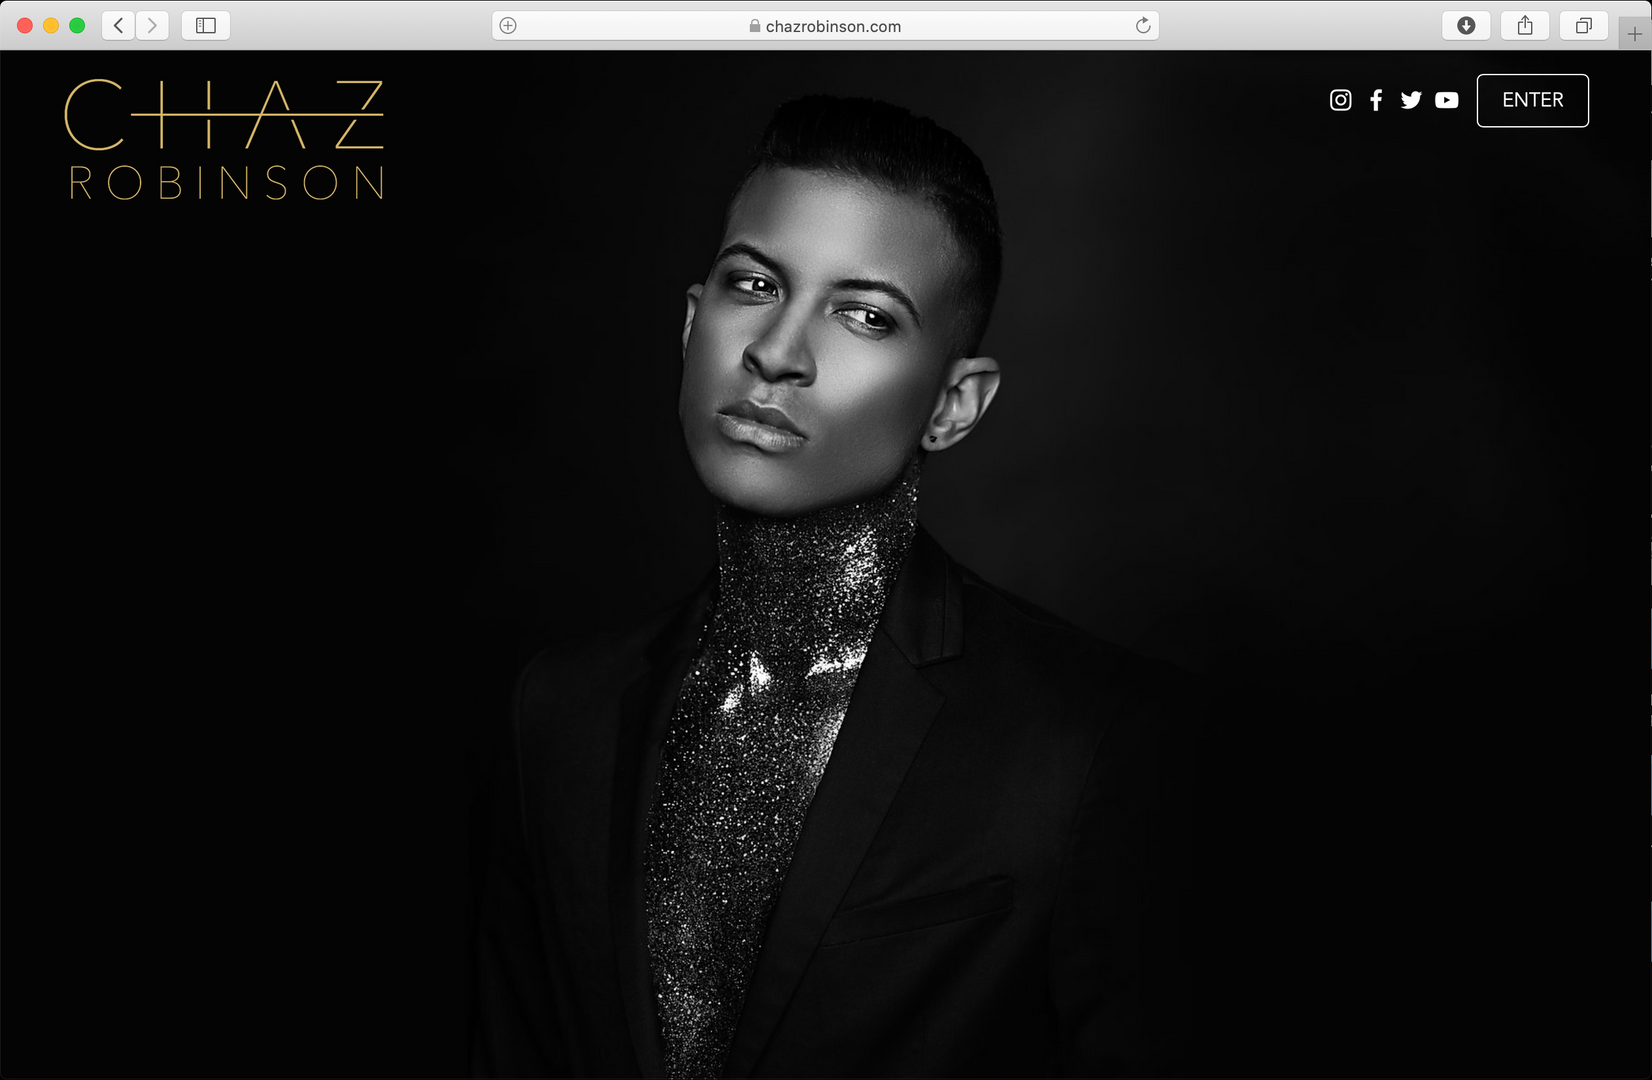 Chaz Robinson Website